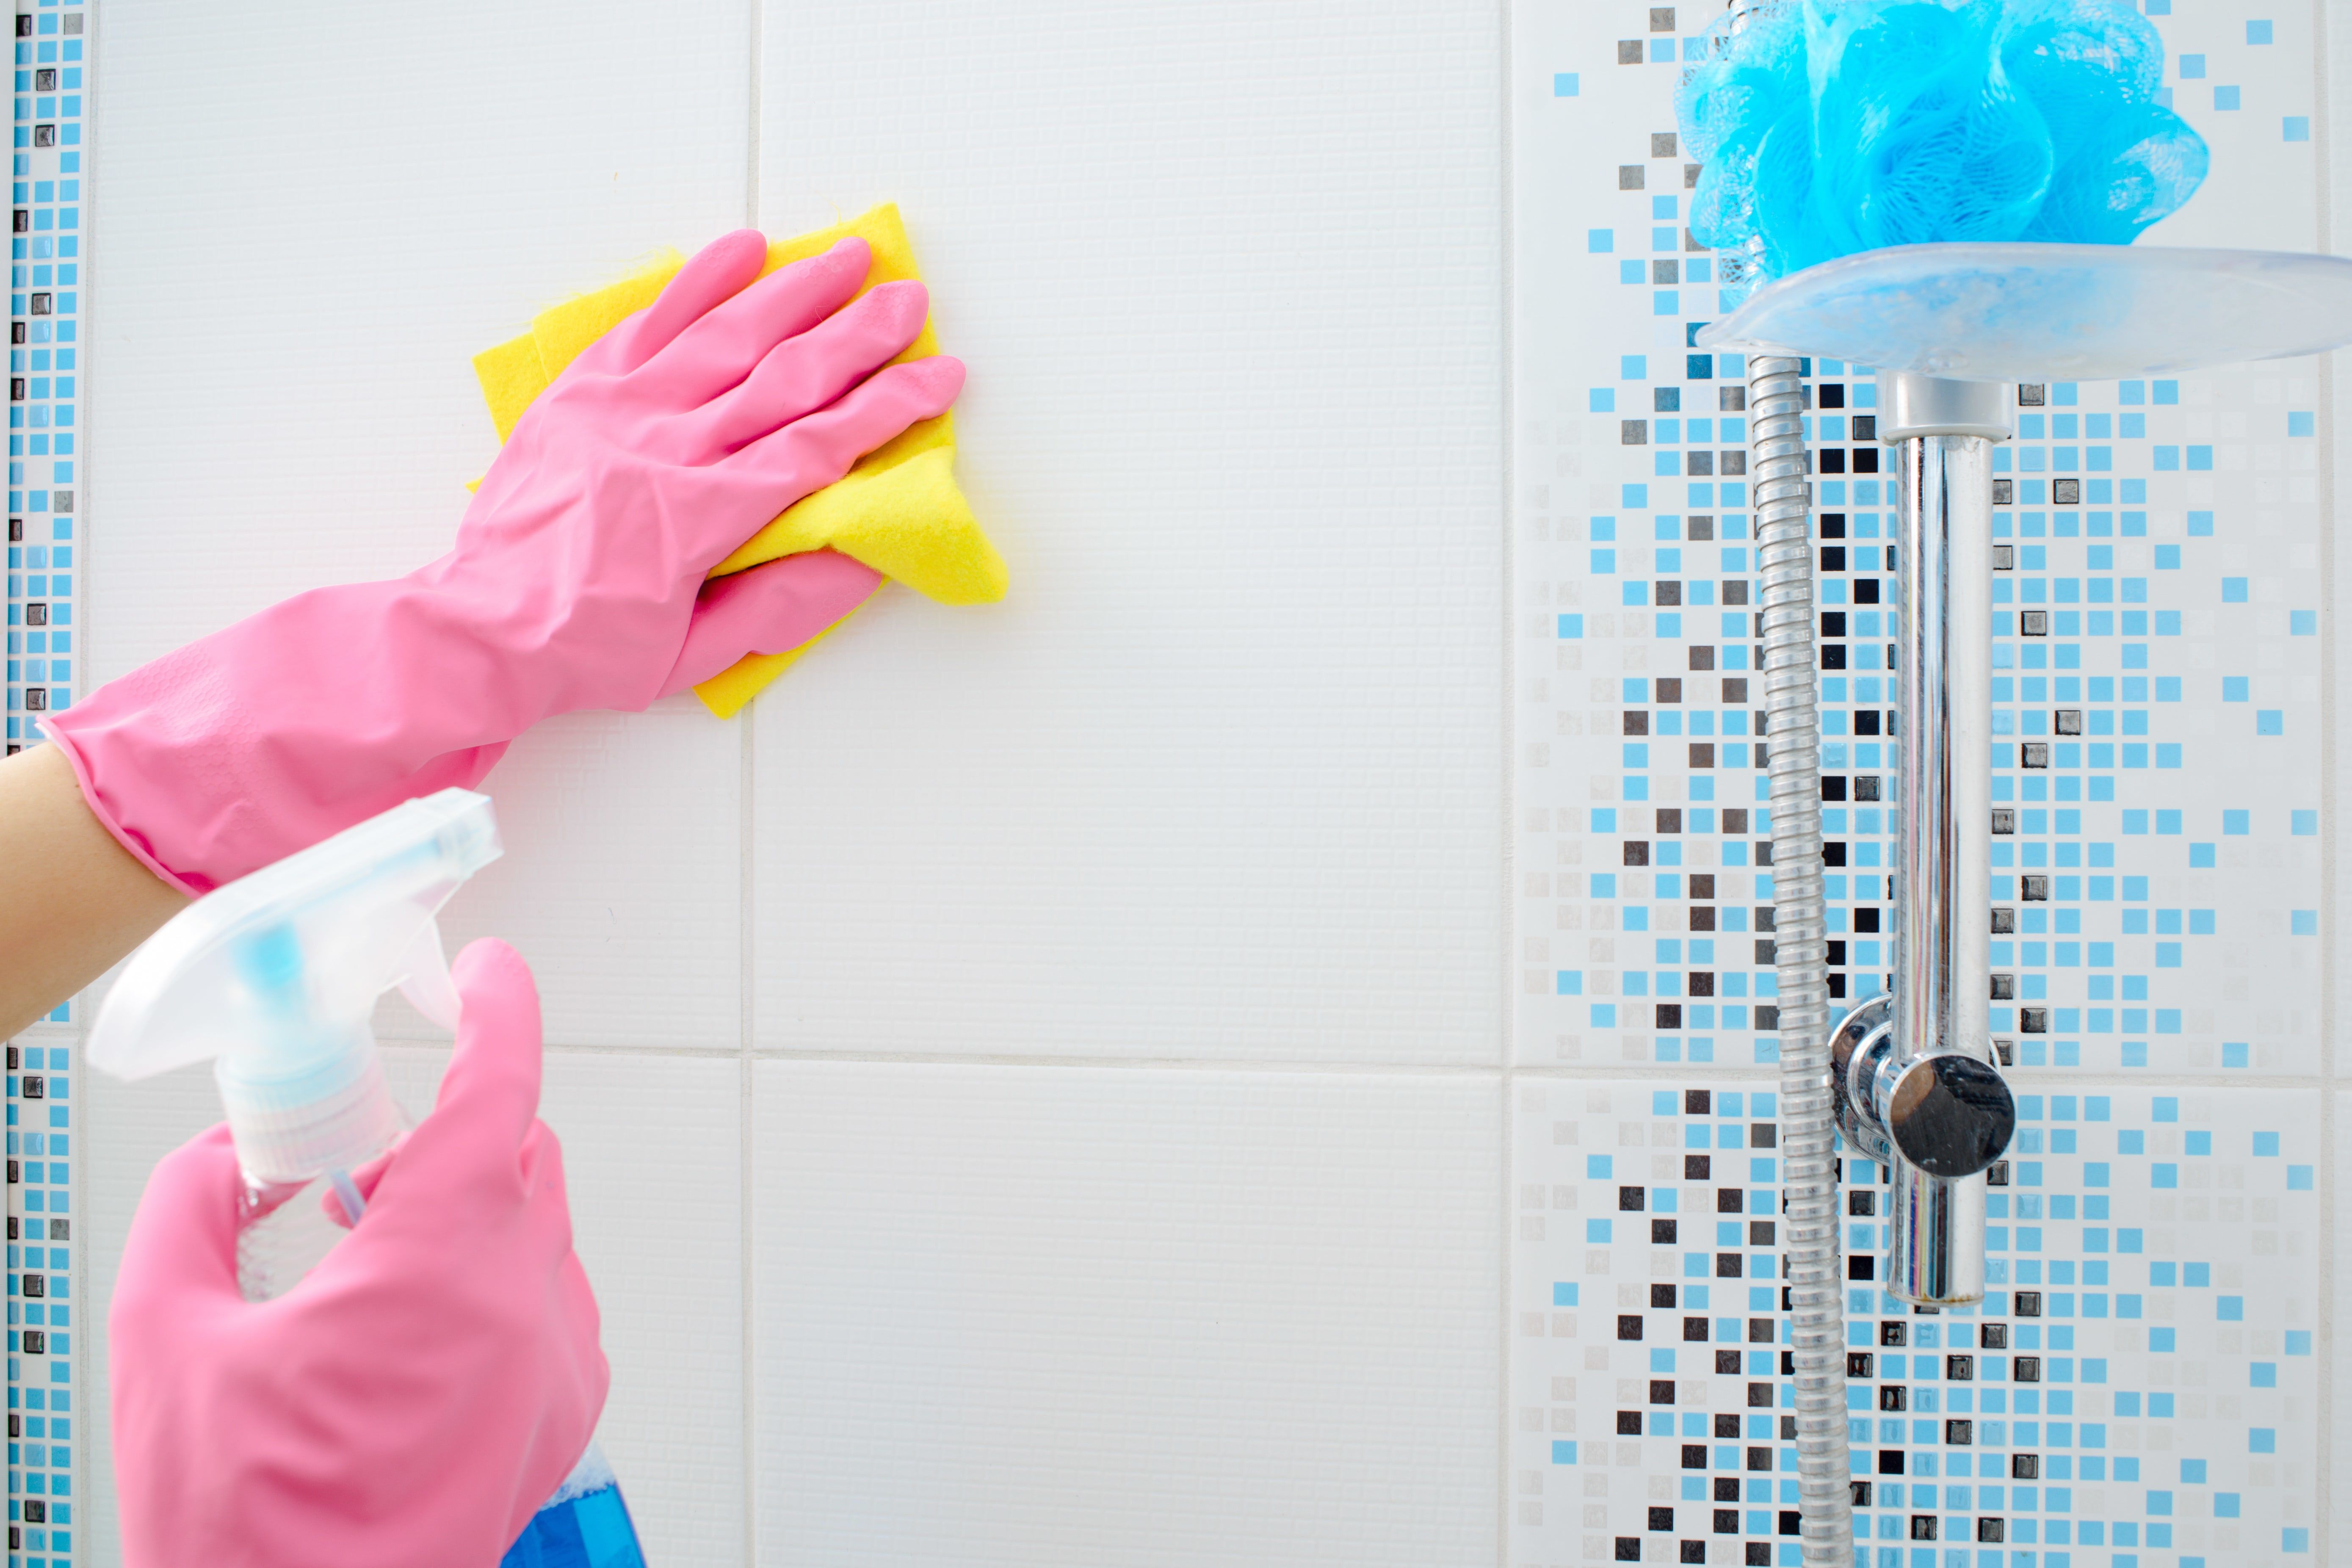 Bathroom wall cleaning in gloves